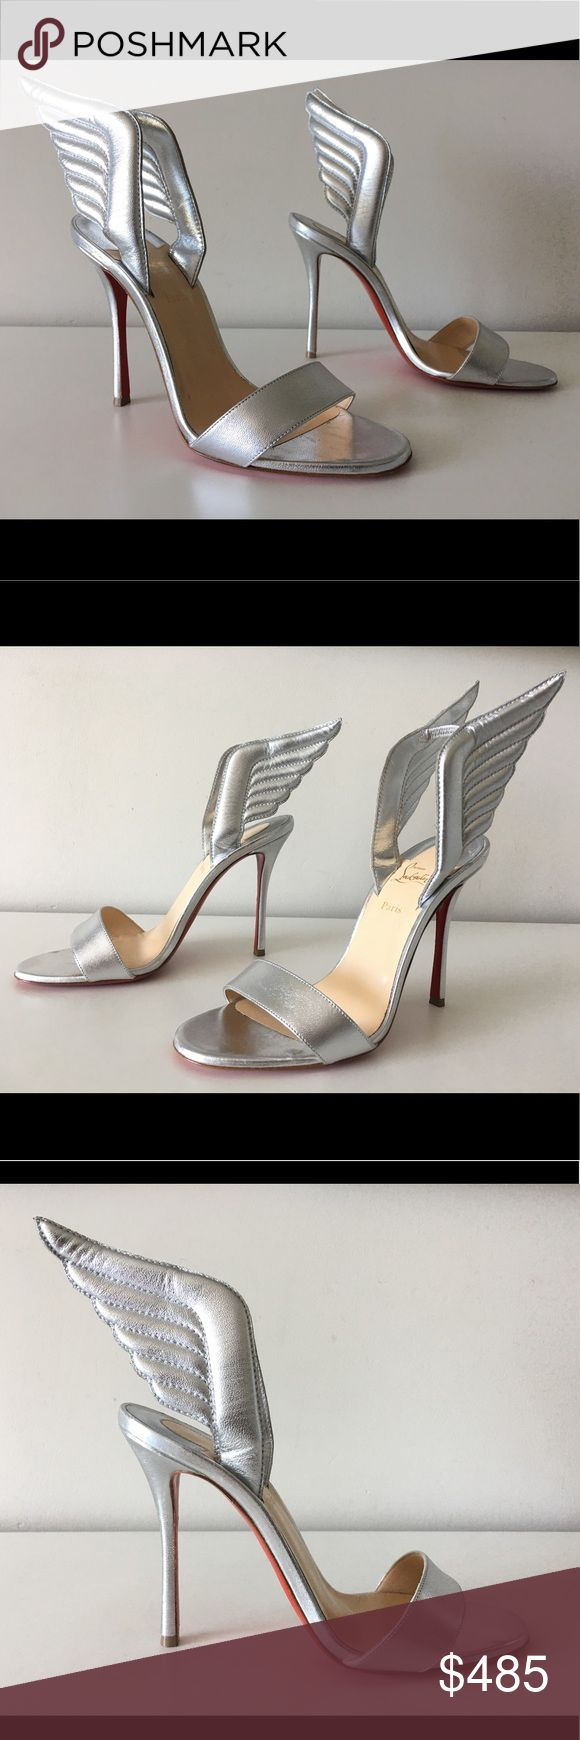 "CHRISTIAN LOUBOUTIN SAMOTRESSE 100mm WING SANDALS Christian Louboutin Samotresse 100mm Wing  -Condition: Brand New Store Display Shoes + Dust Bag. -Size: EU 38 (Insoles measure 9.5 inches long). -Color: Silver. -Model: Samotresse 100mm. -Metallic Leather Upper. -Covered heel measures: 4""(100mm). -Strap bands open toe. -3D wings with stretch inset. -Slip-on style. -Signature red leather sole. -""Samotresse"" is made in Italy. -Retails for $895.00 -Same Day Shipping. Christian Louboutin Shoes…"